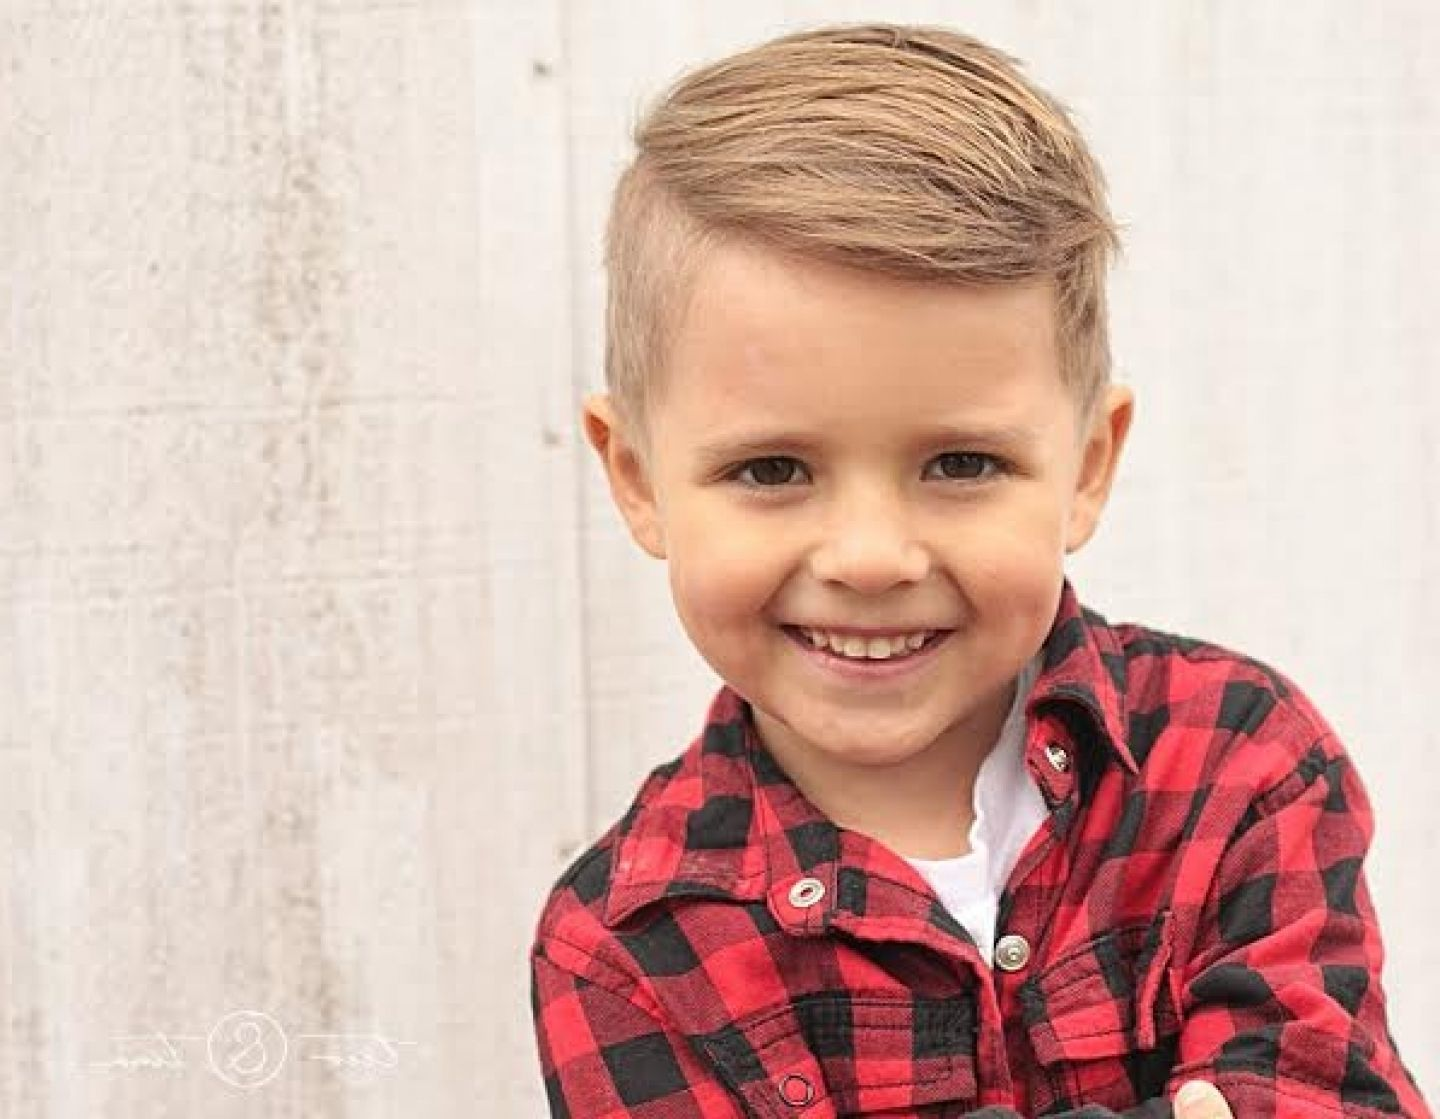 Little Boys Haircuts - Hairstyle Picture Magz | haircuts ...